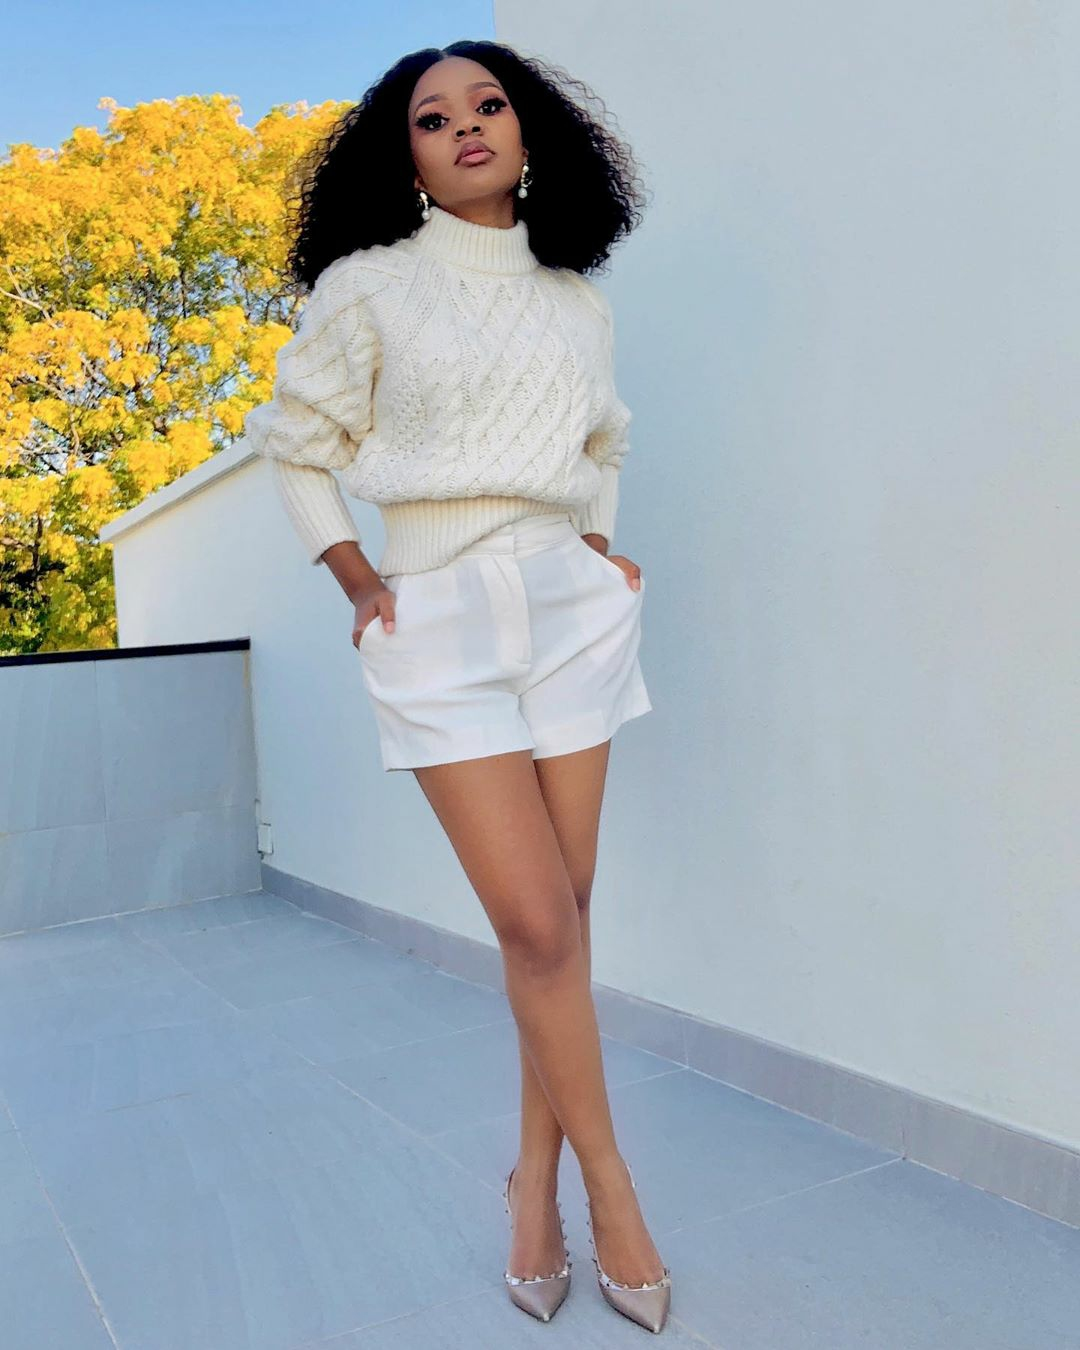 The Looks We Loved On African Celebrities And Style Stars Last Week